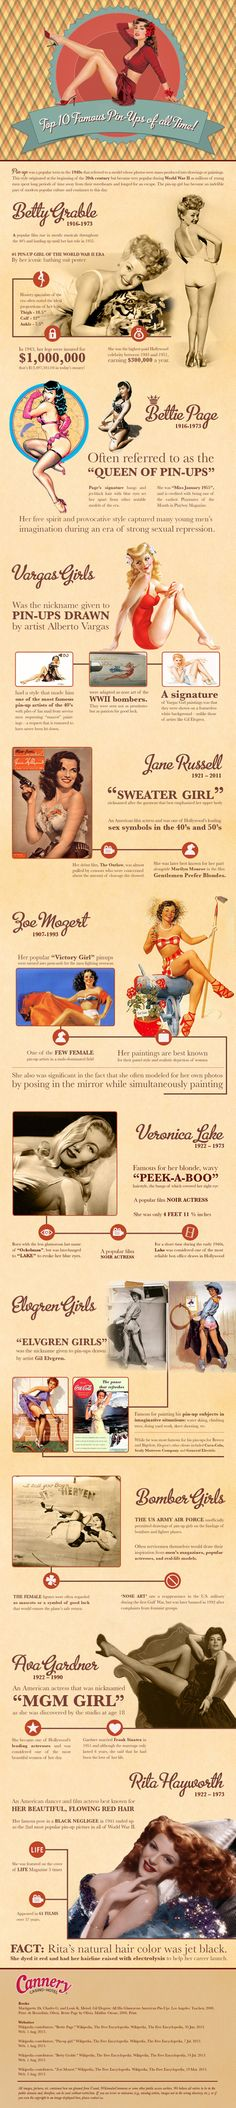 Top 10 Famous Pin-Ups Of All Time [INFOGRAPHIC] #pinup#famous